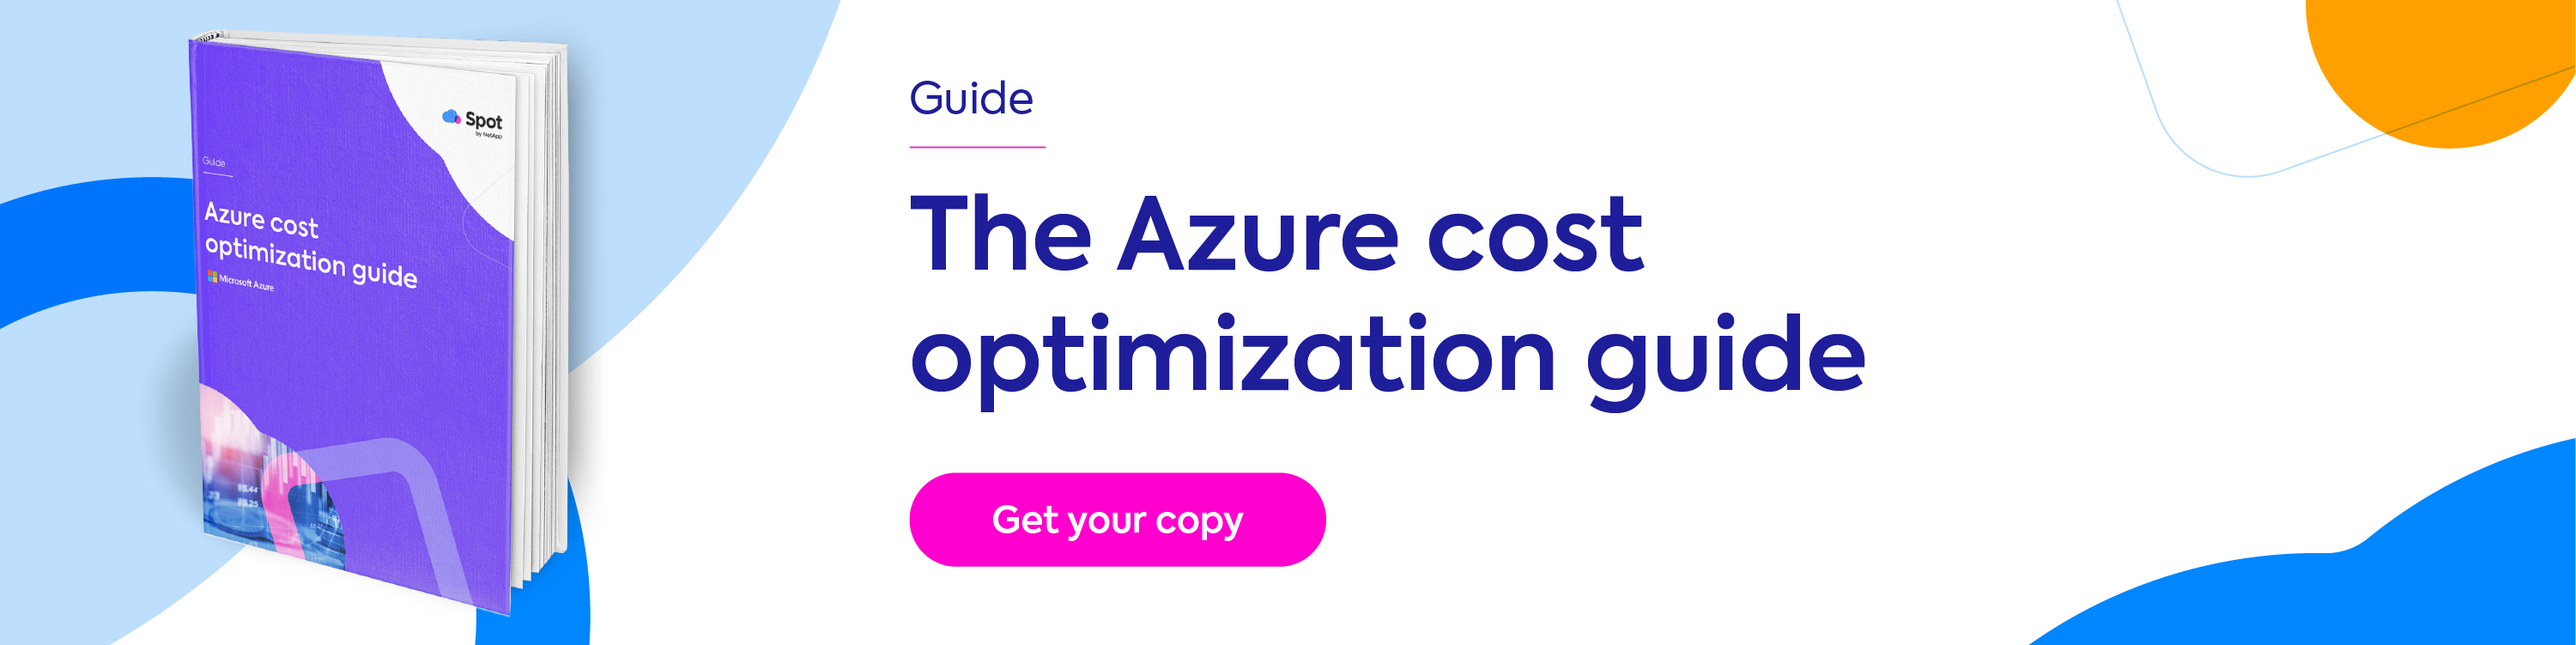 """Get a copy of our ebook, """"The Azure cost optimization guide"""""""